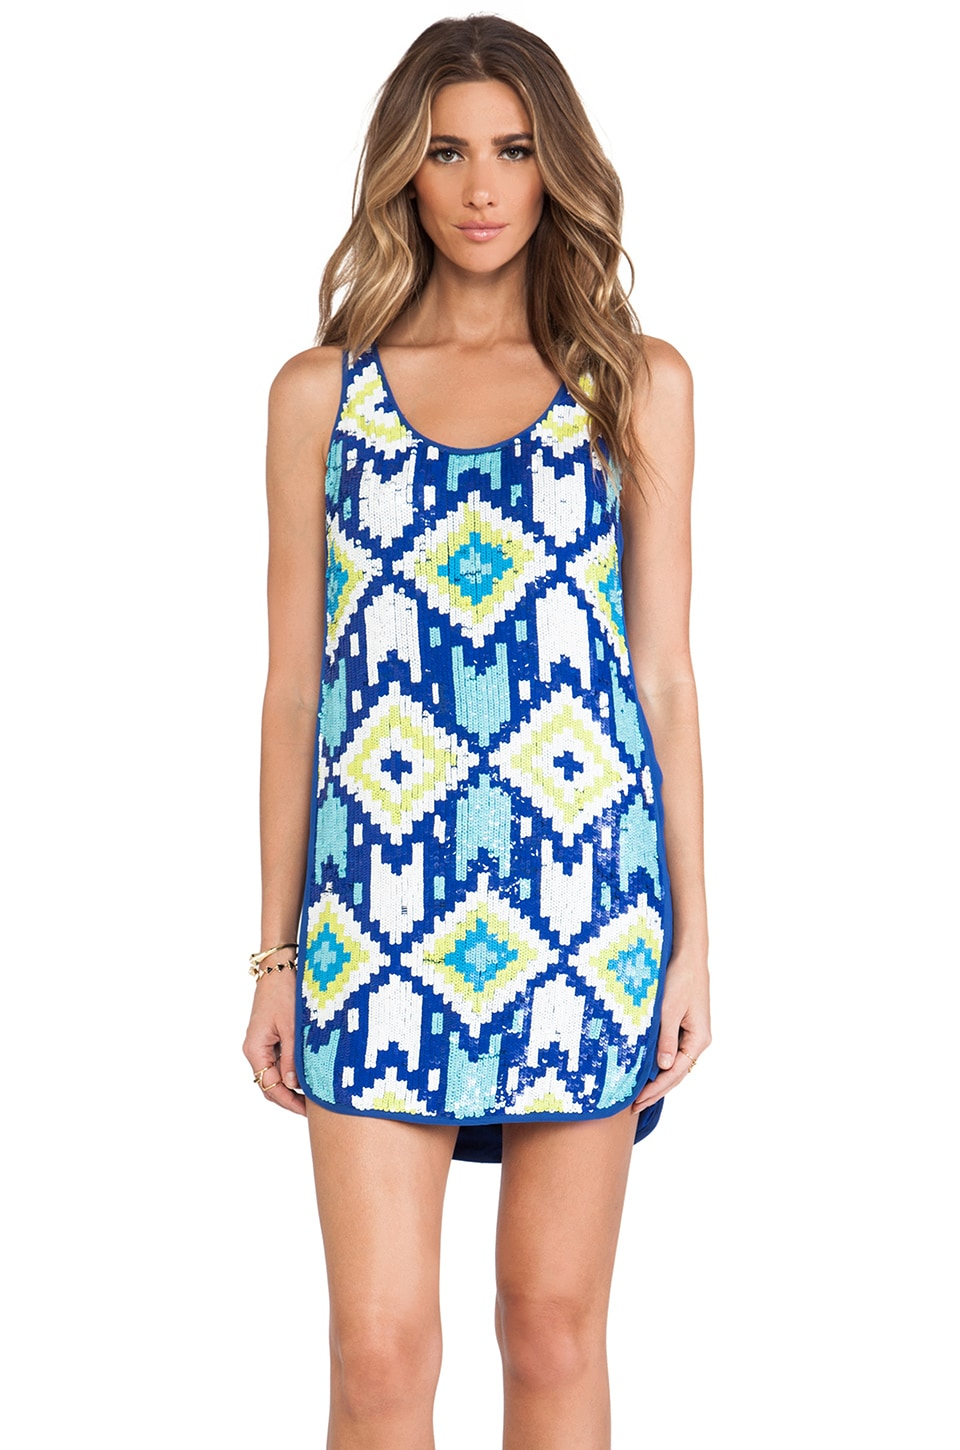 Trina Turk Lore Dress in Mirage Blue